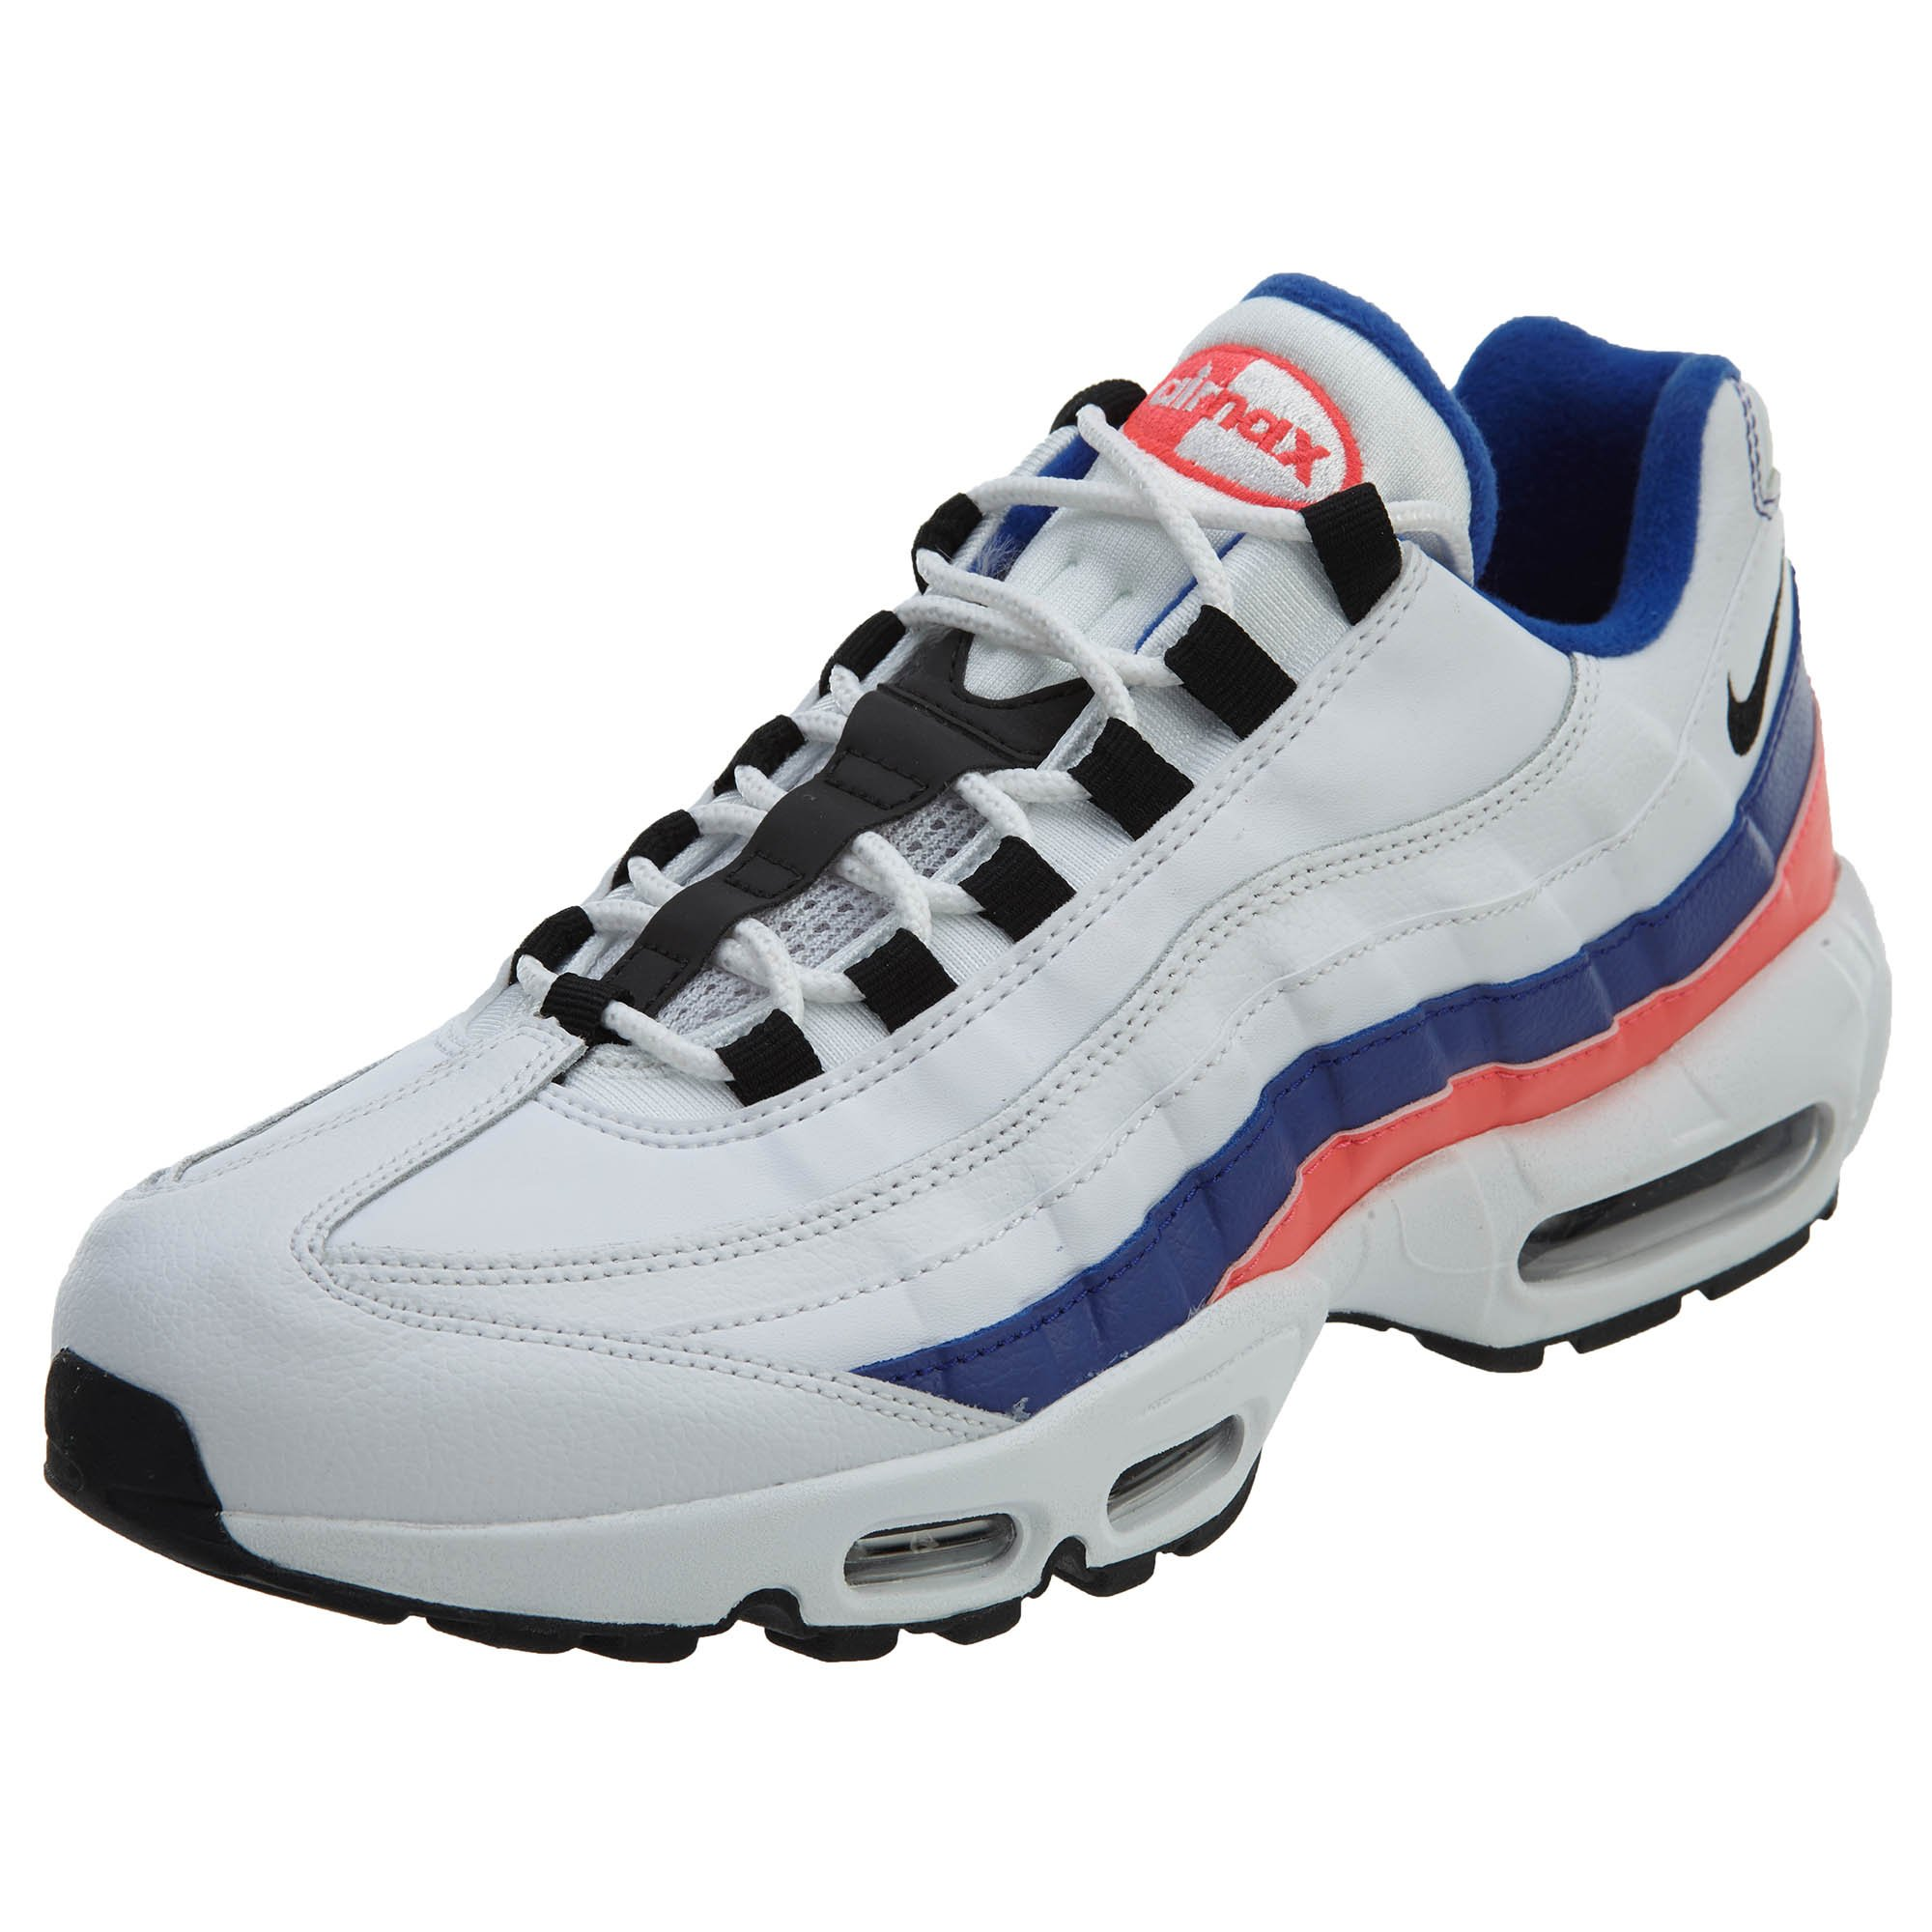 new style 2f393 b8c33 Galleon - Nike Air Max 95 Essential (White Black-Solar Red, 9.5)